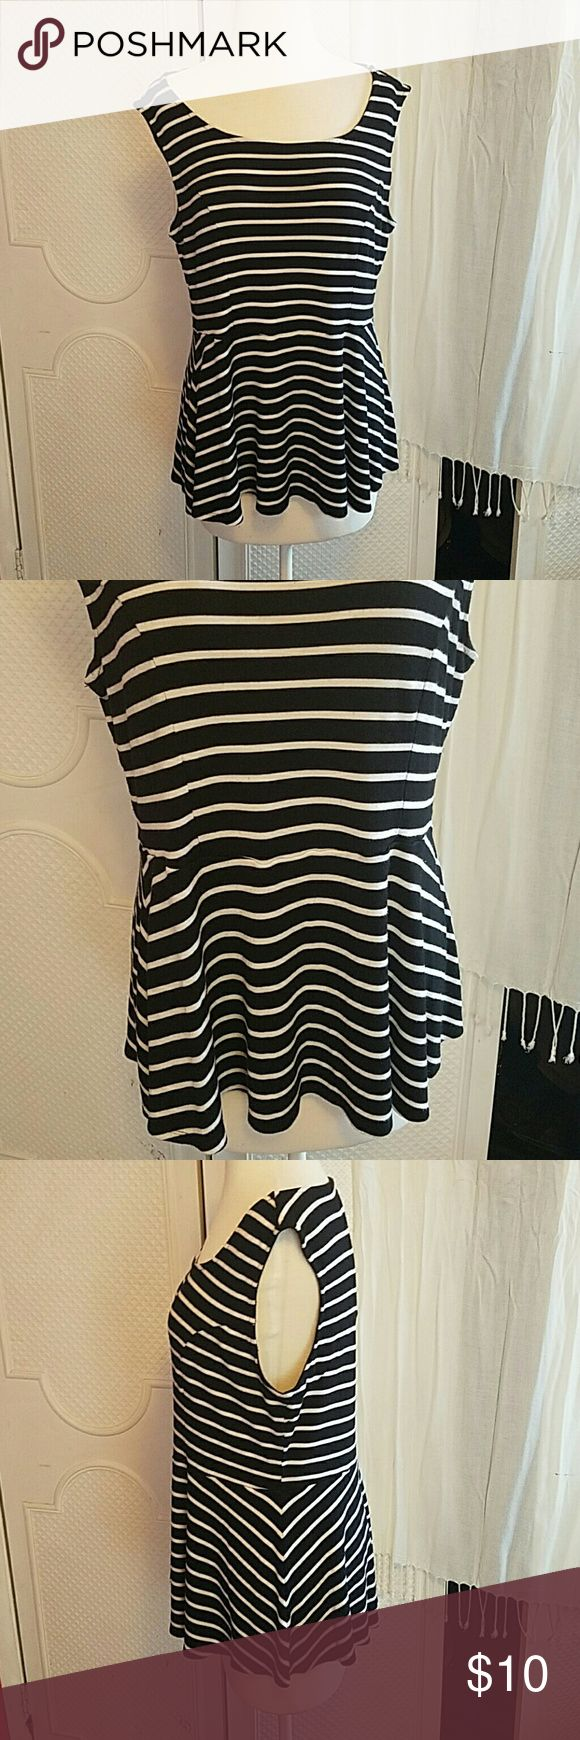 Black & White Striped Peplum Torrid Top Great condition. Has a bit of pilling in arm pits but hardly noticeable. torrid Tops